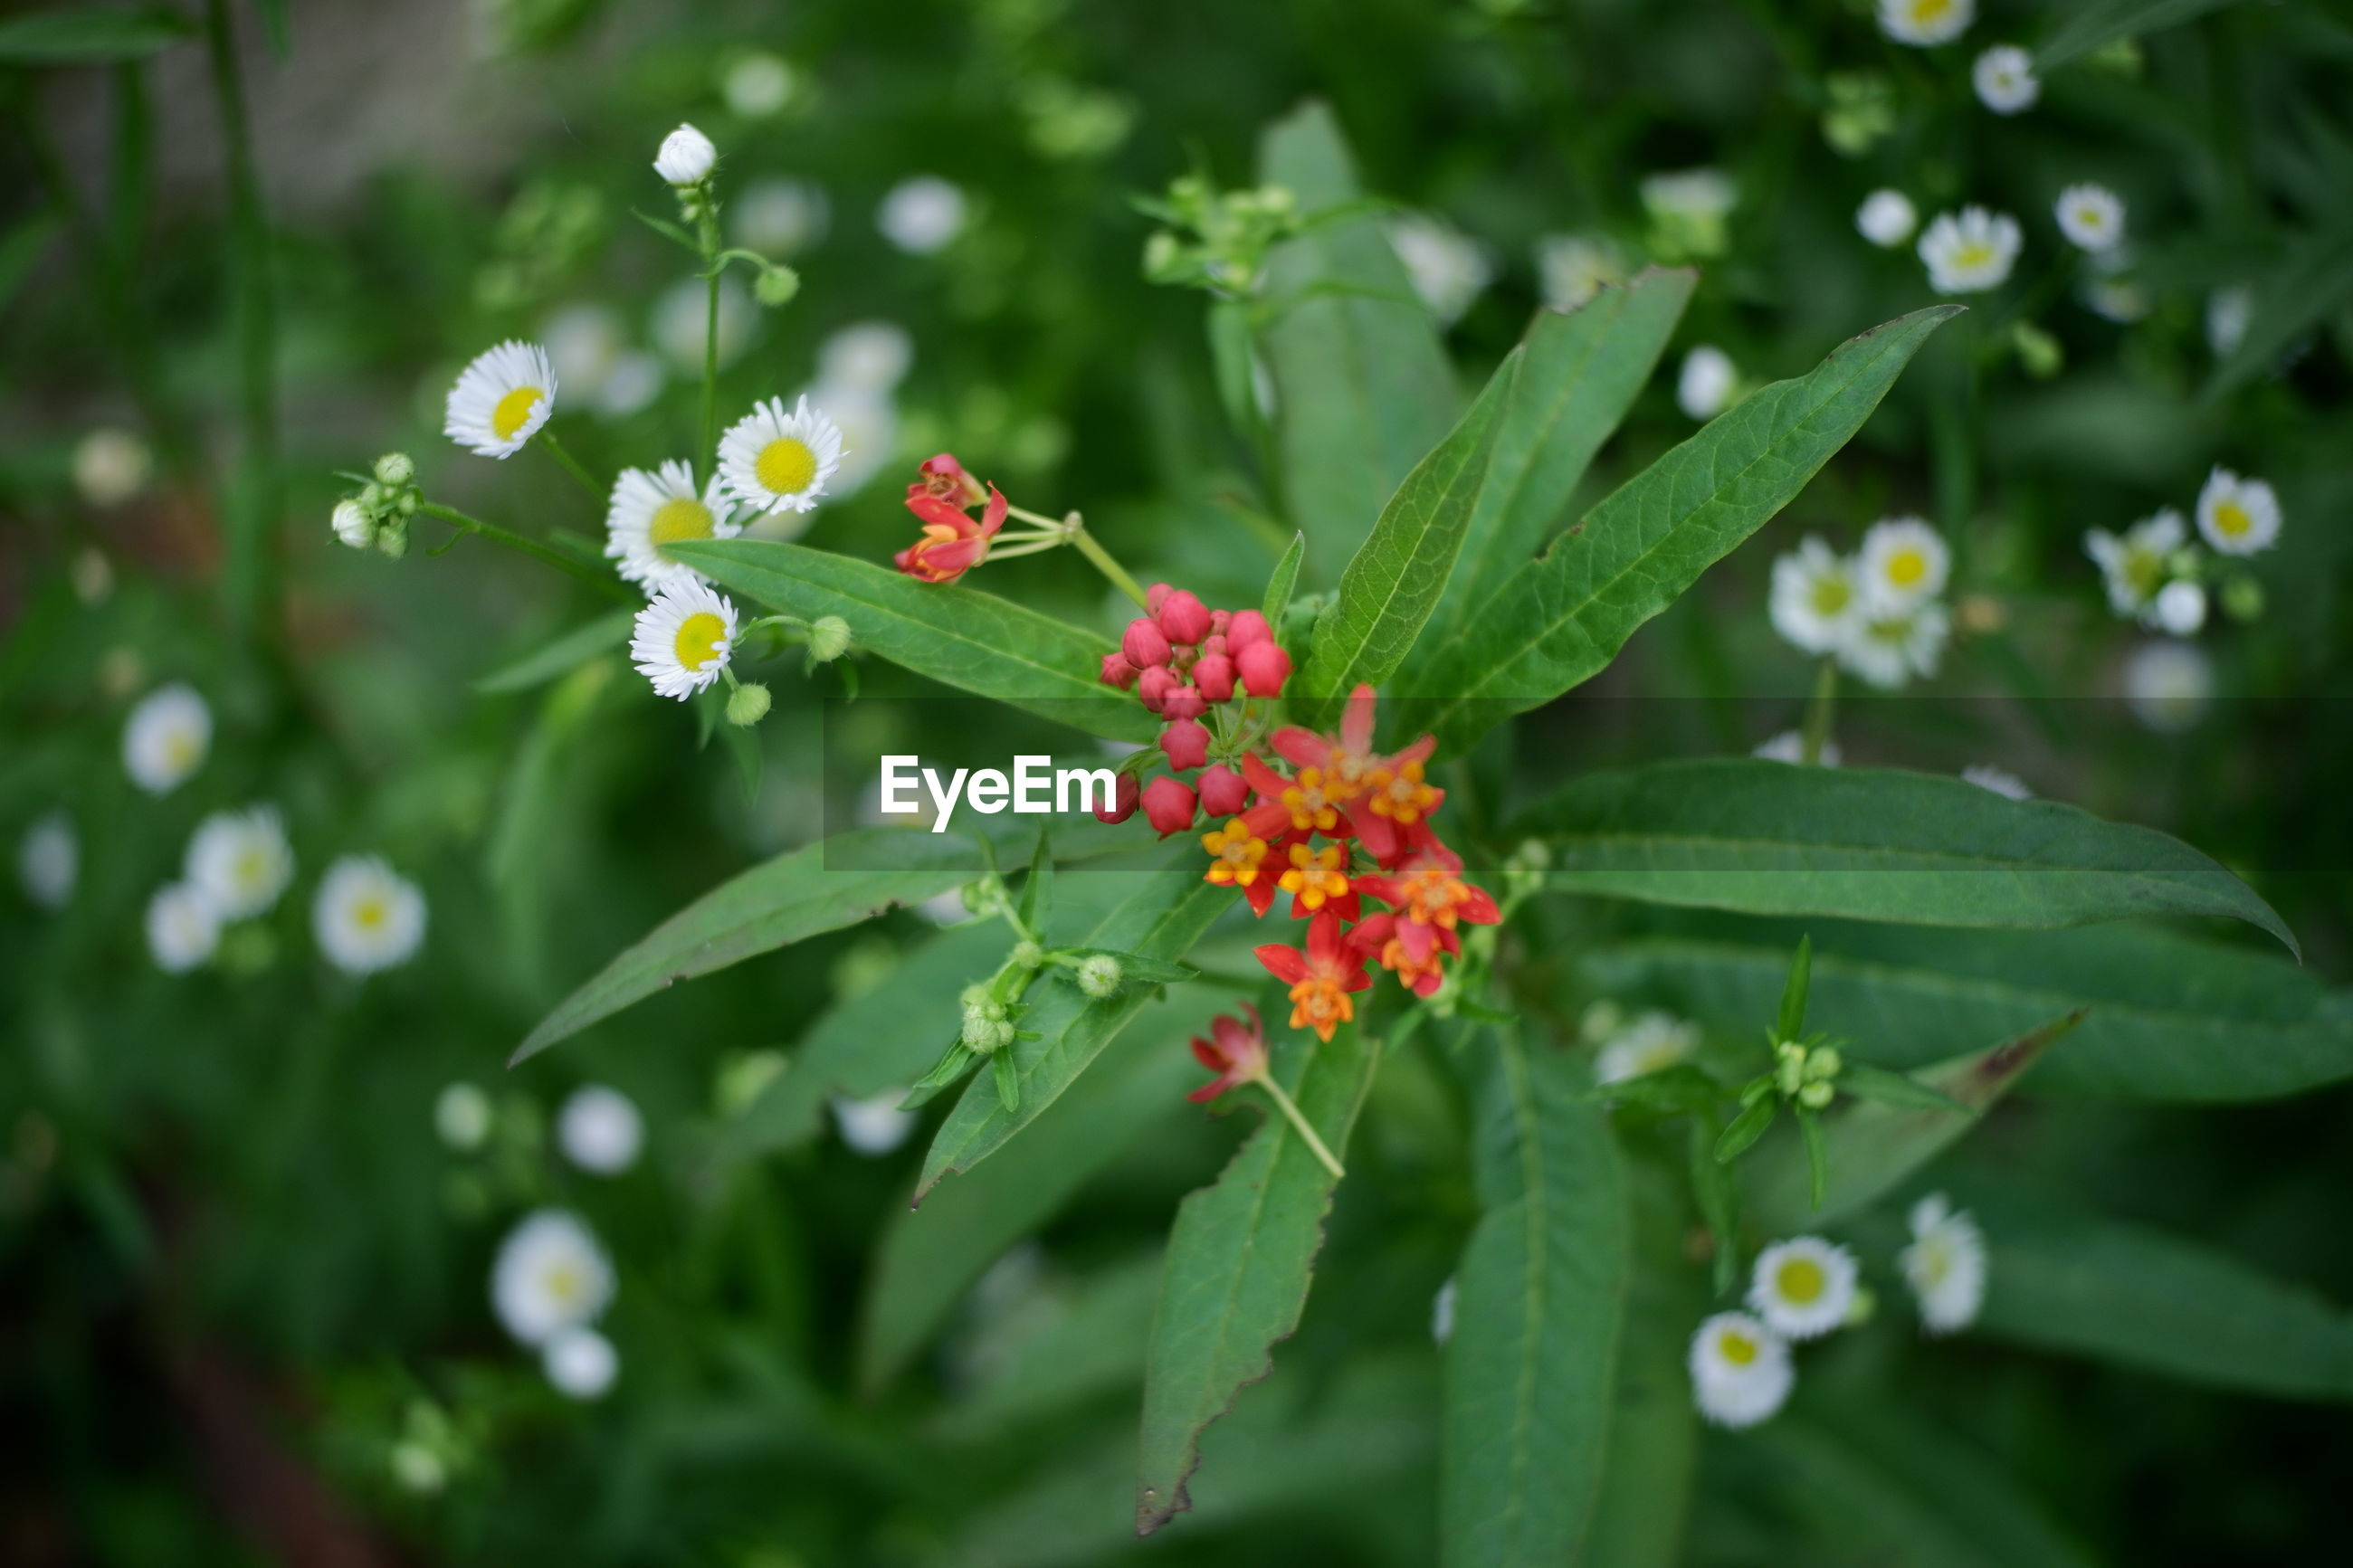 CLOSE-UP OF FLOWERING PLANT WITH RED FLOWER